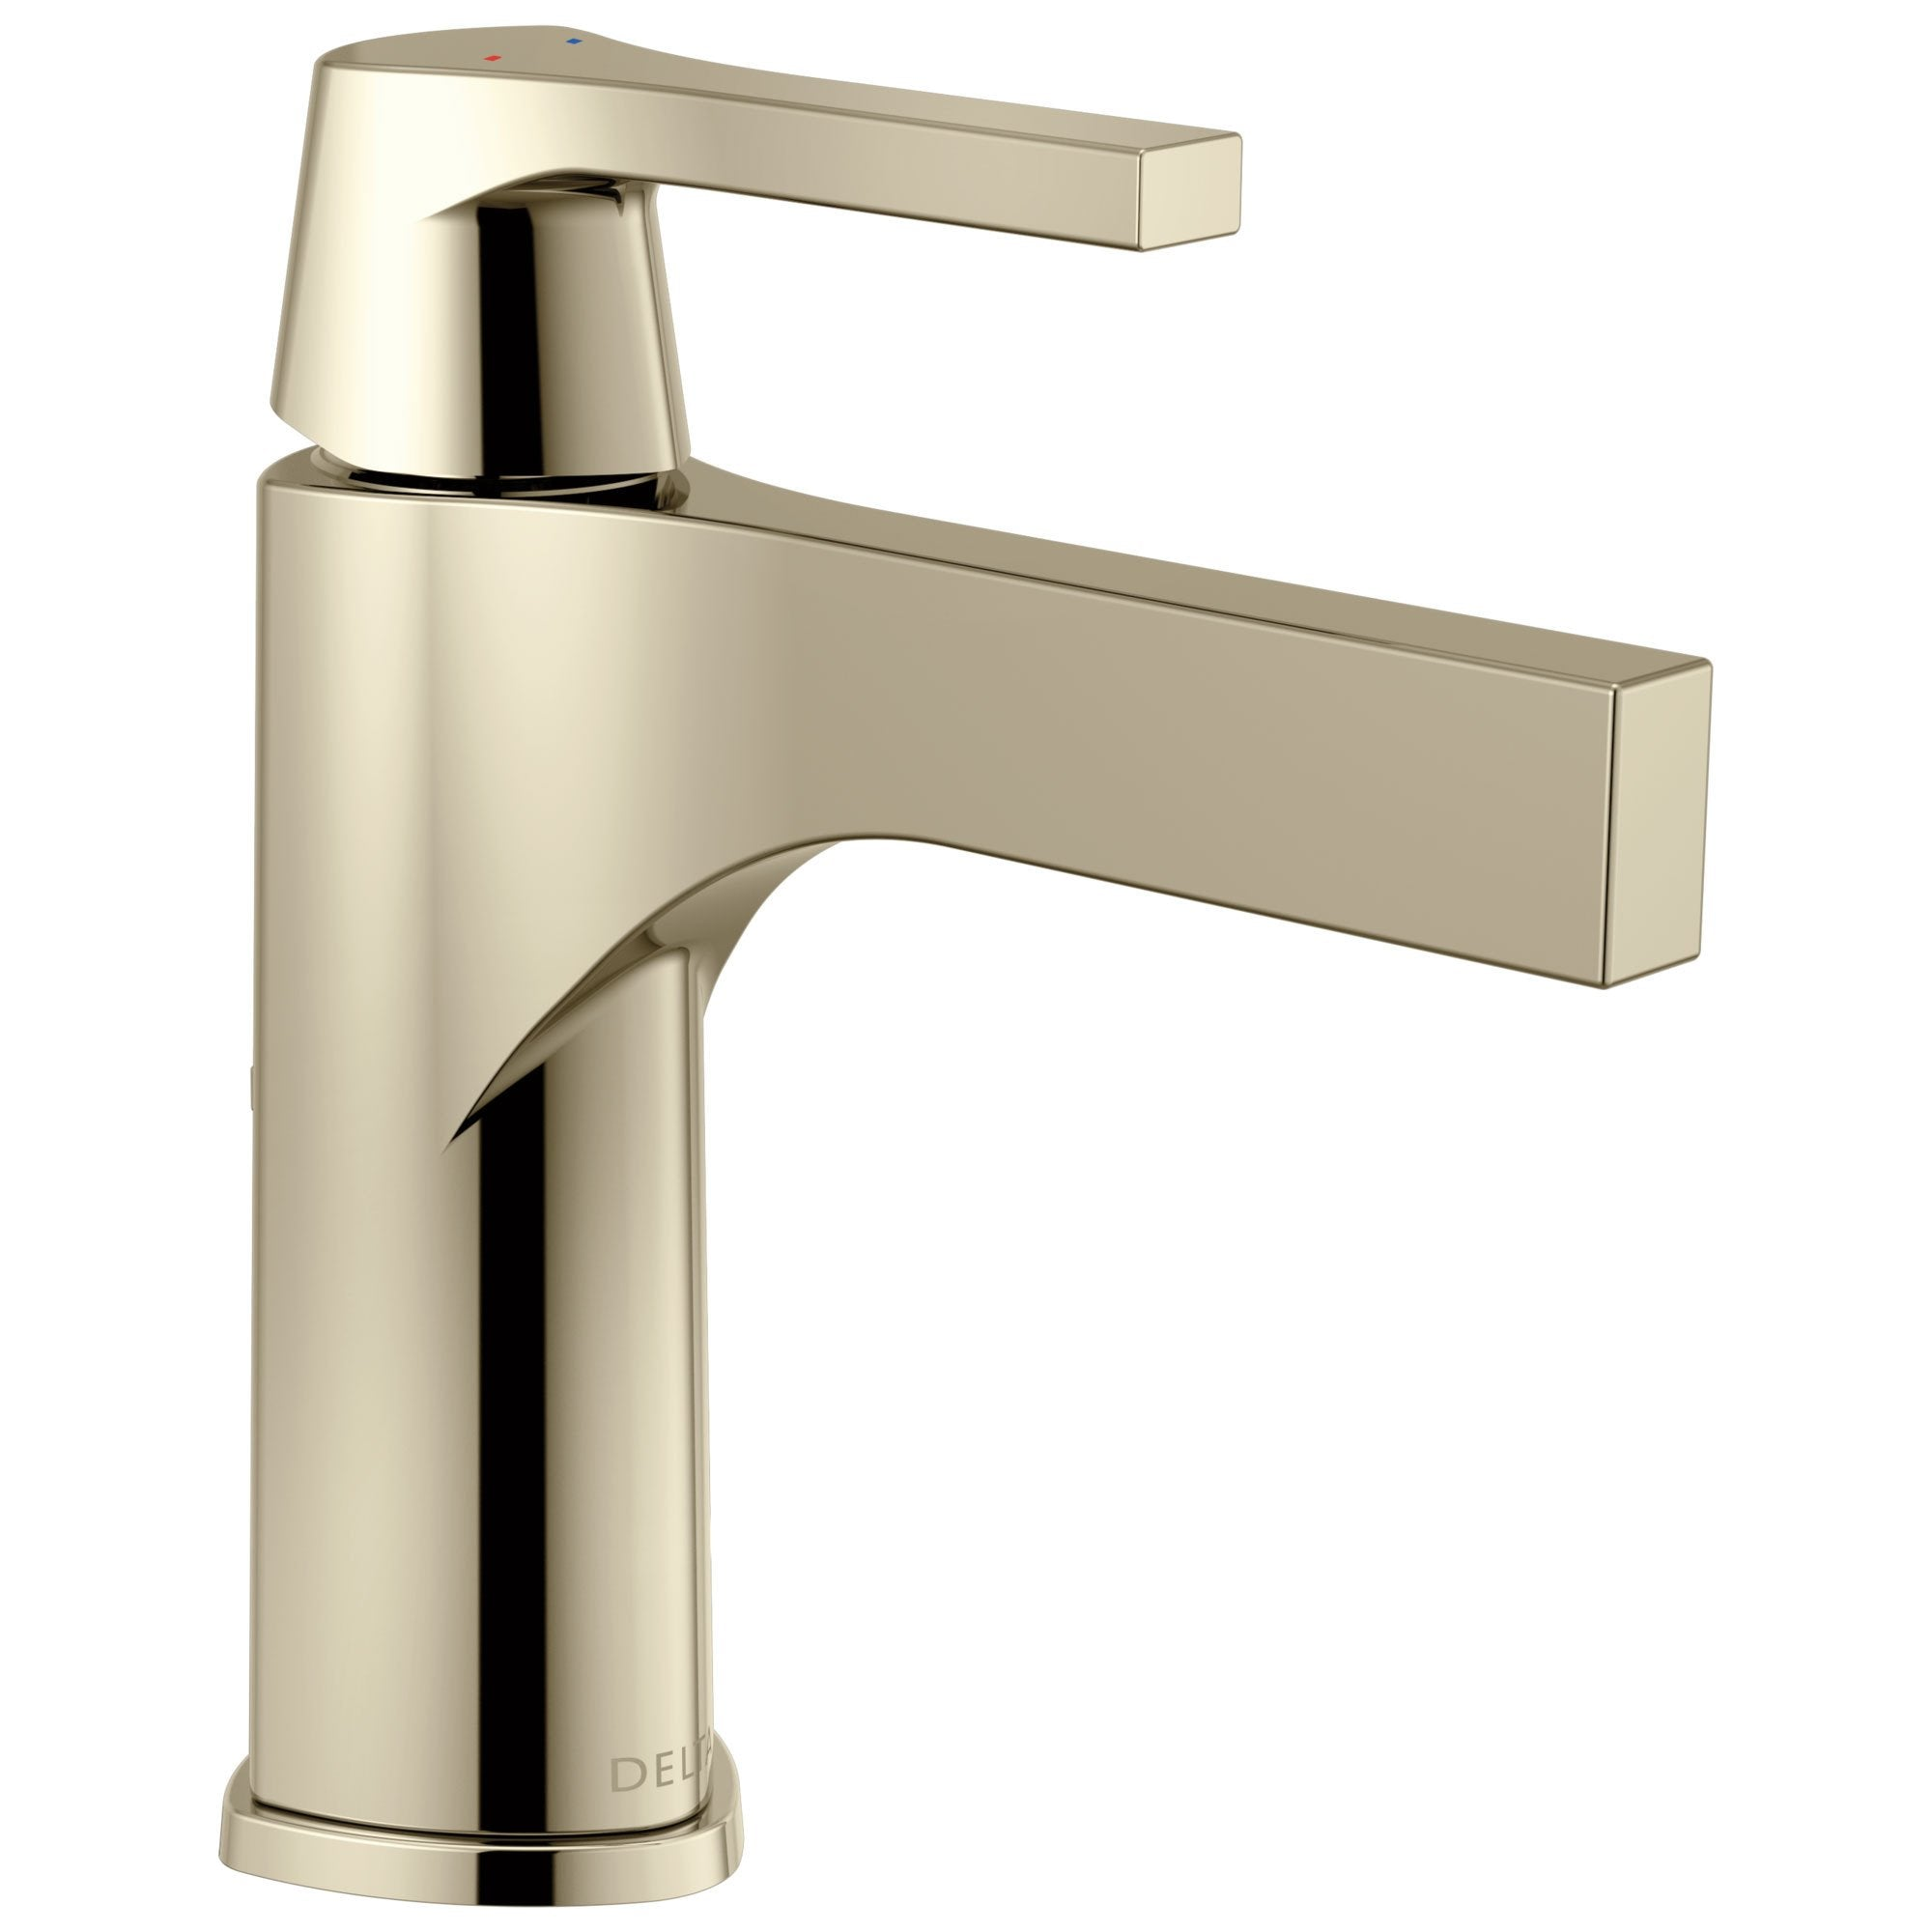 Delta Zura Collection Polished Nickel Finish Single Handle Modern One Hole Bathroom Lavatory Sink Faucet with Metal Pop-up Drain 743893